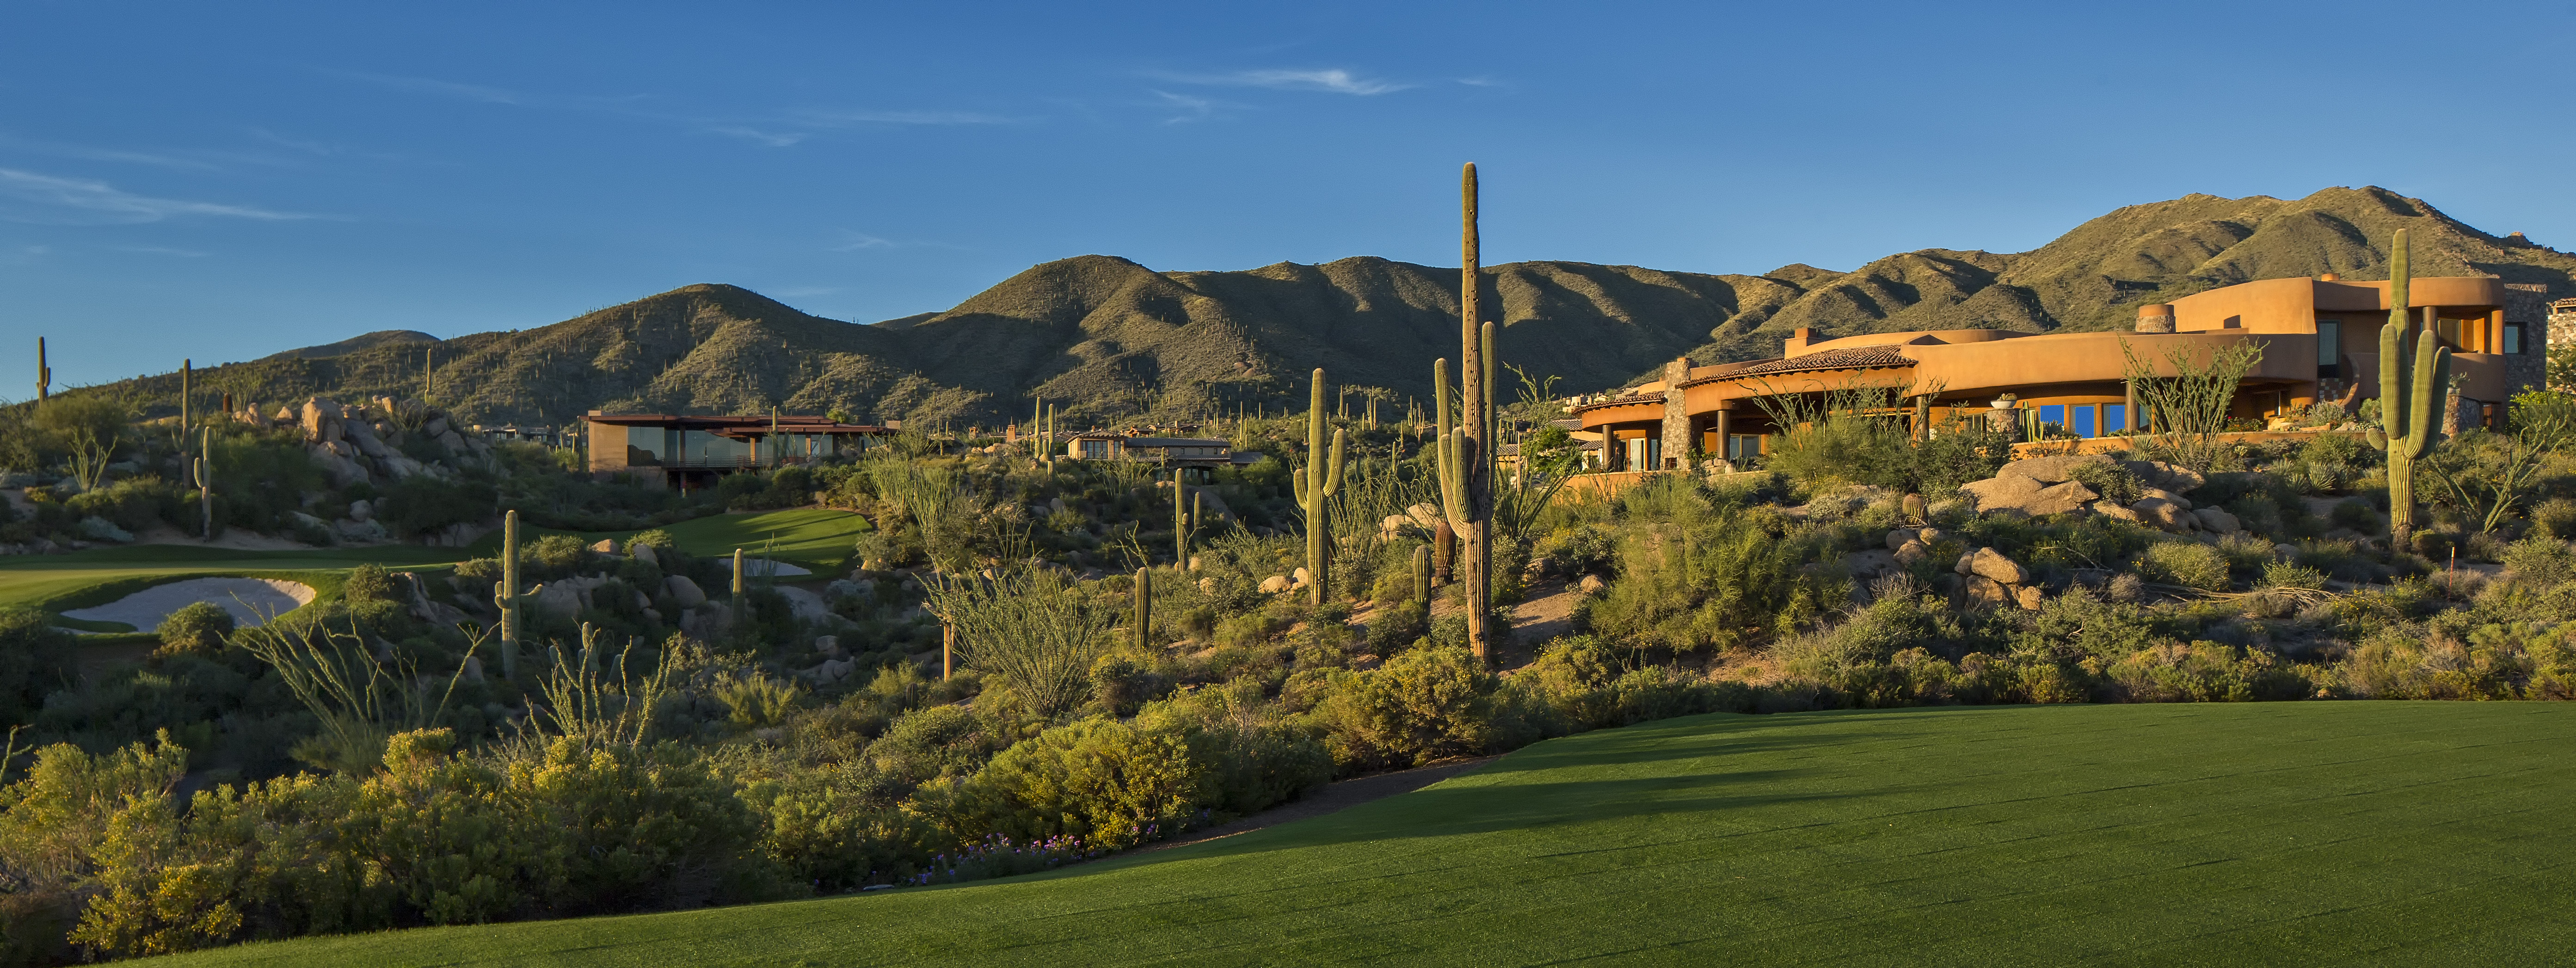 golf course property for sale in Desert Mountain, AZ